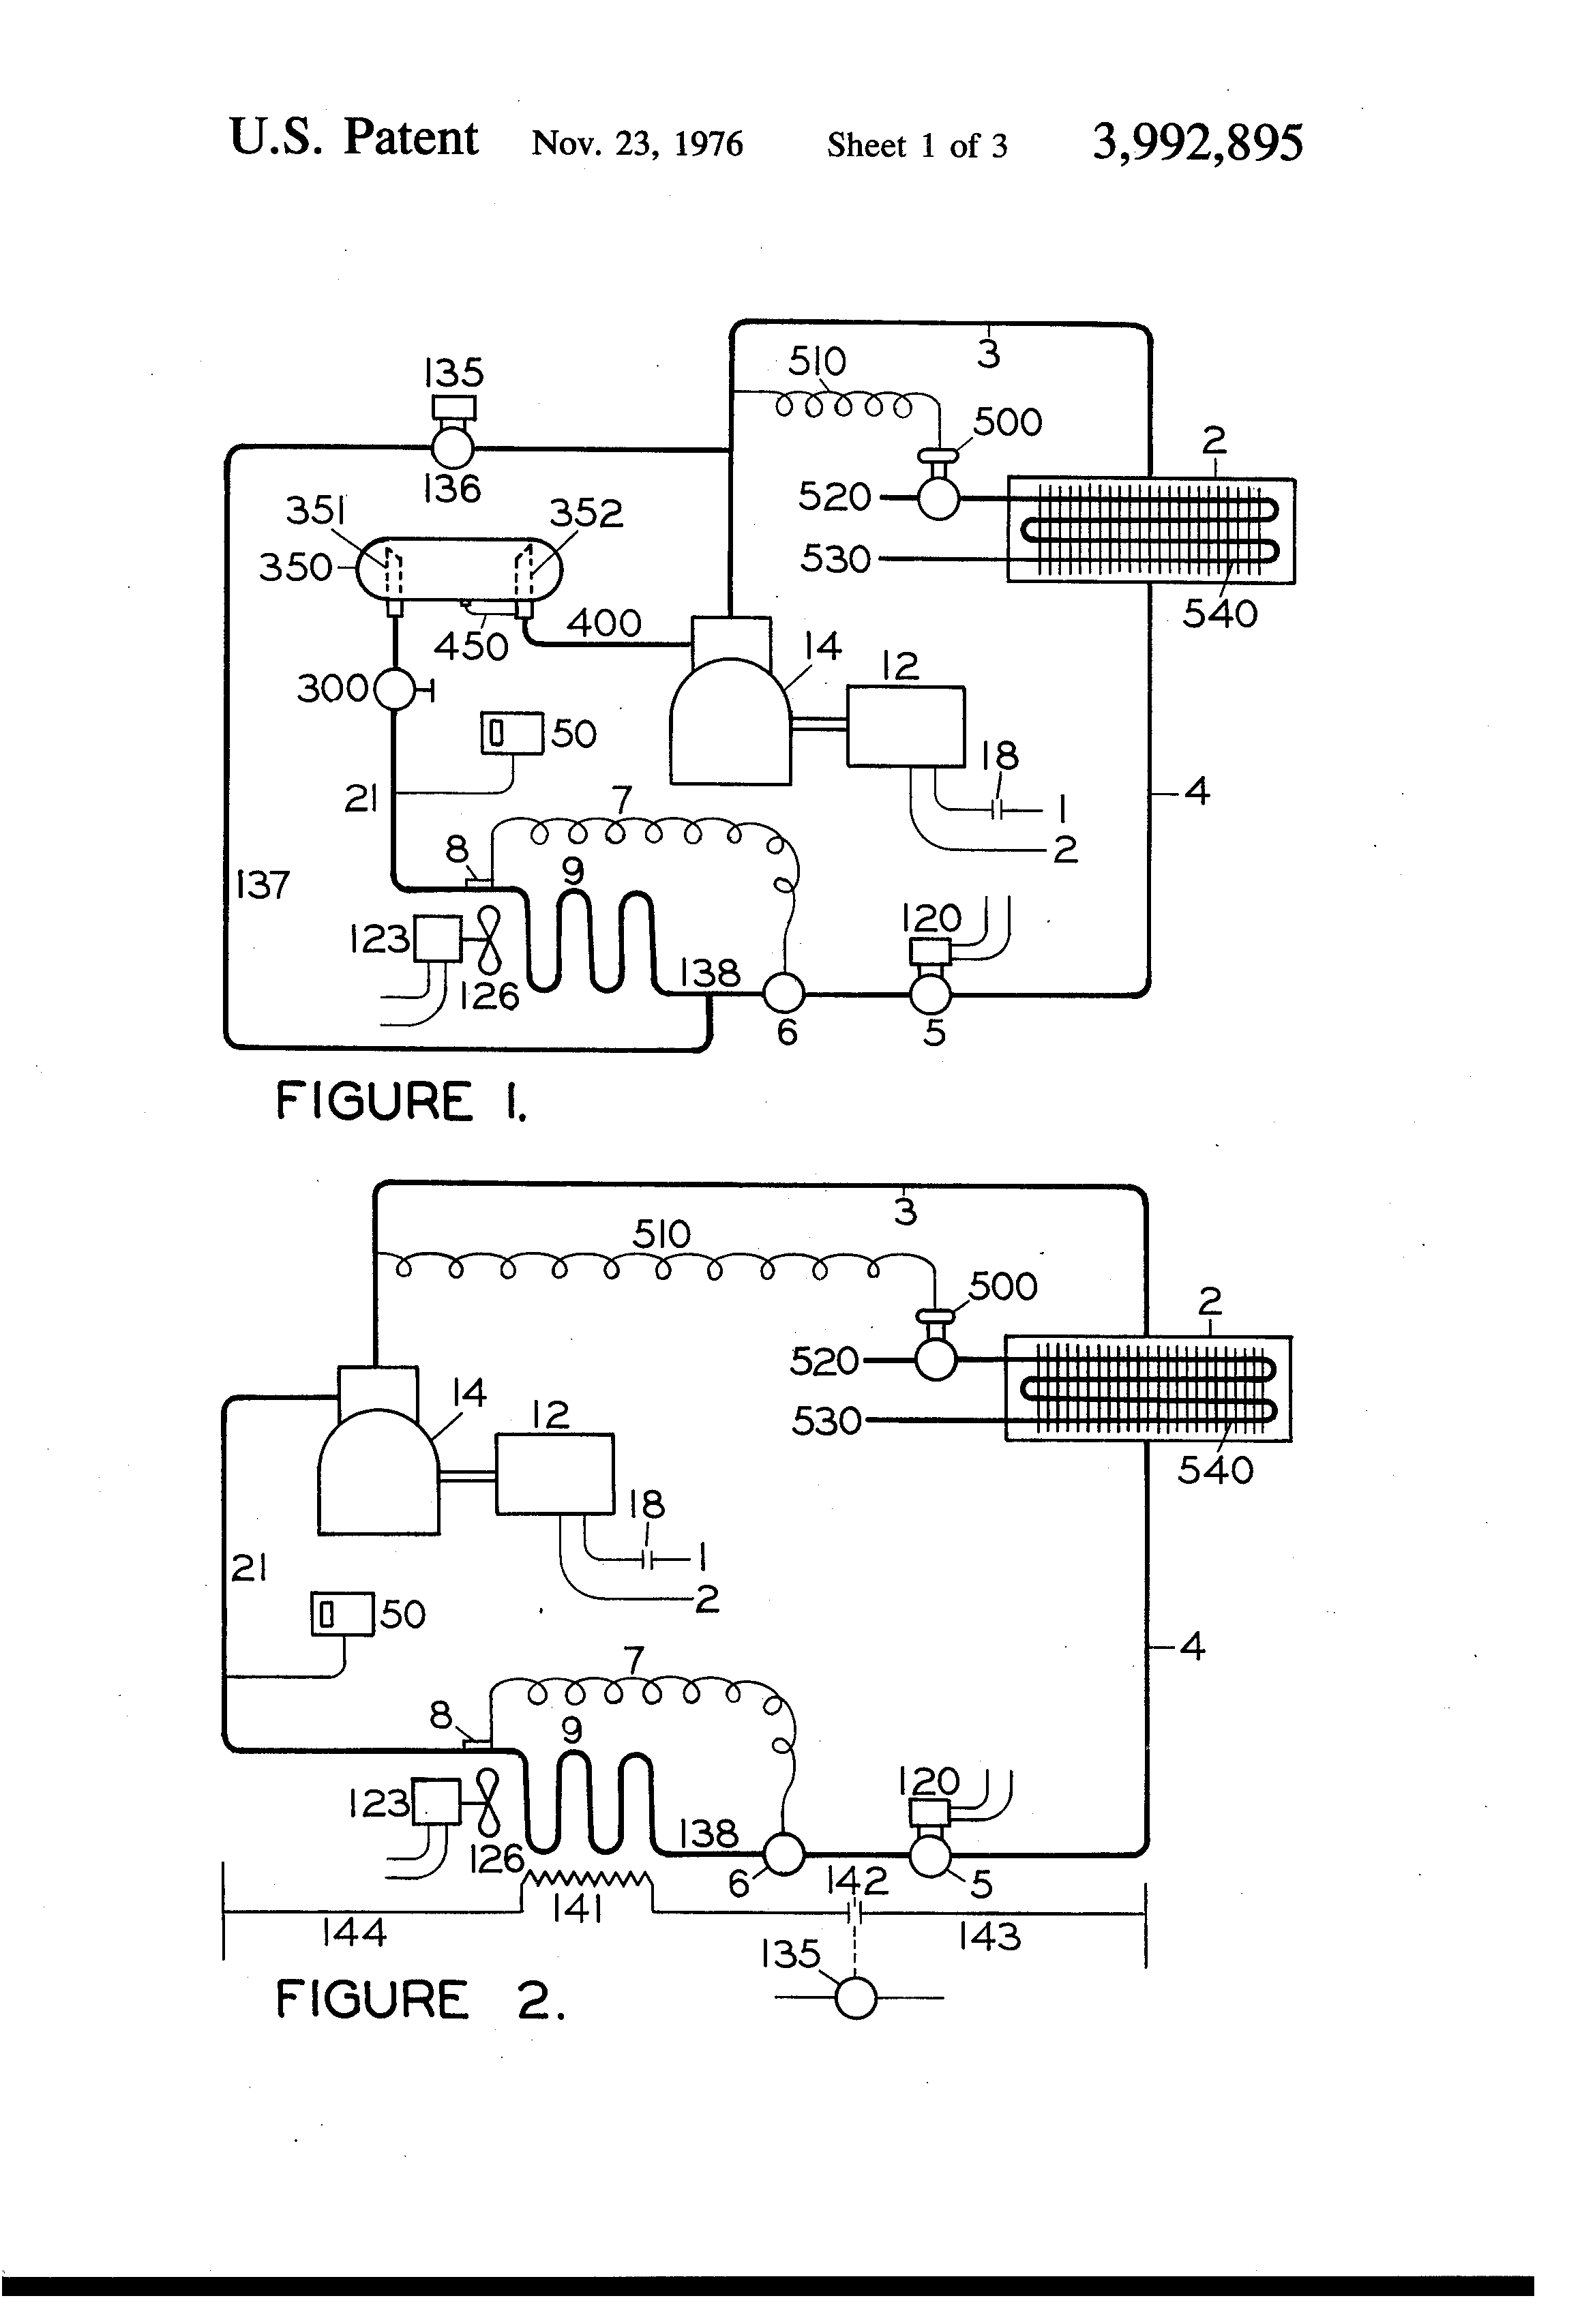 Defrost Termination Switch Wiring Diagram 41 Images Control Us3992895 1 Patent Controls For Refrigeration Systems At Cita